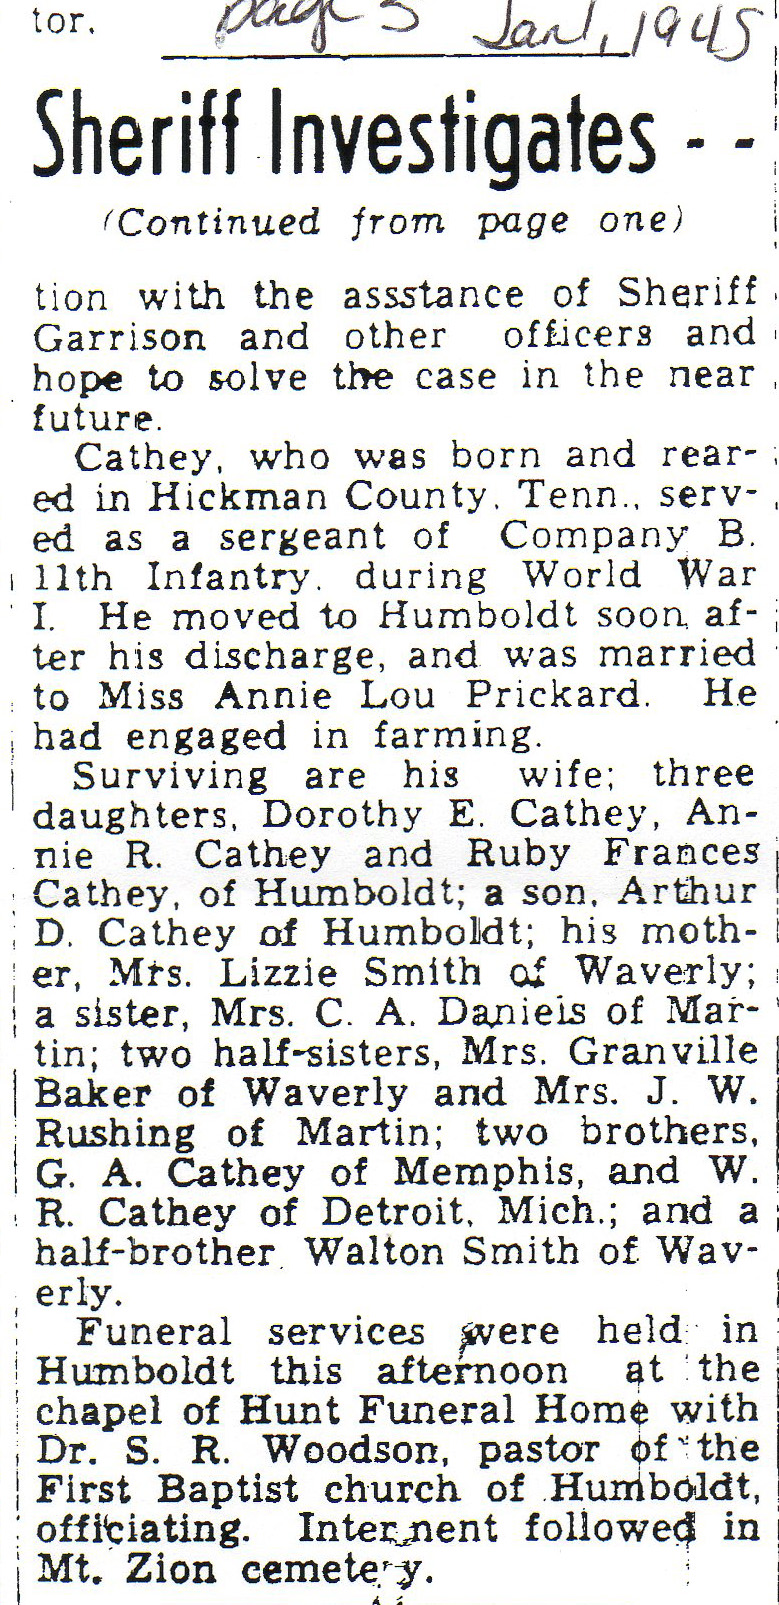 Acra Archie Cathey Death Jan. 1, 1945